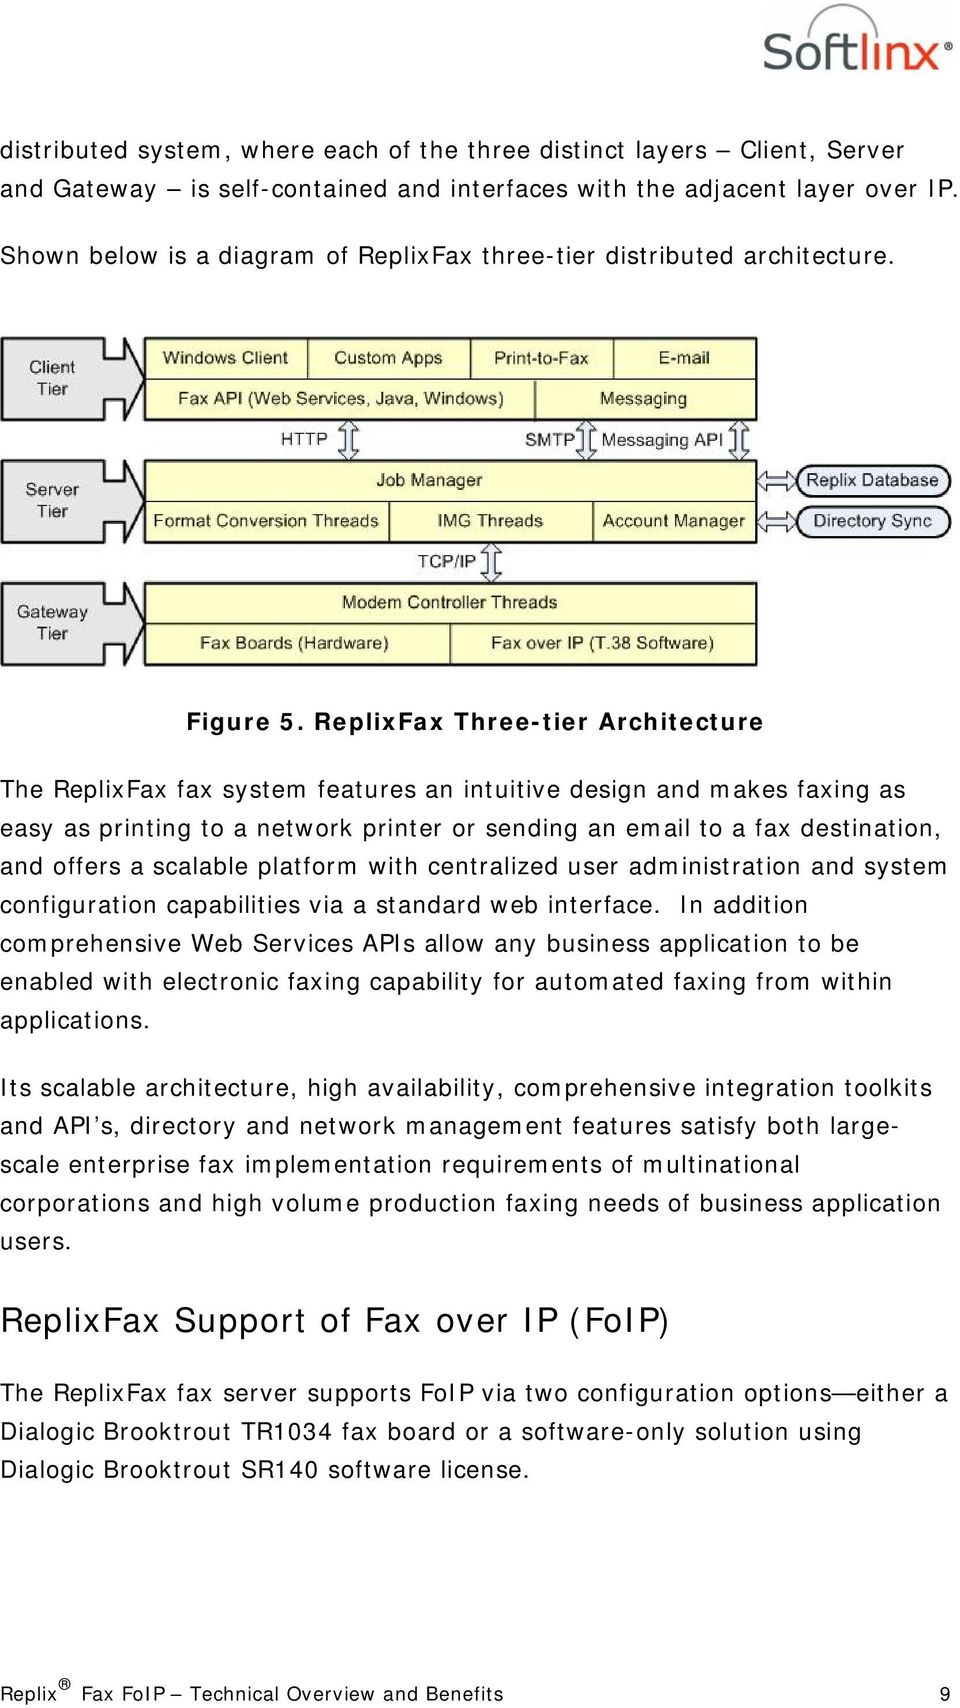 ReplixFax Three-tier Architecture The ReplixFax fax system features an intuitive design and makes faxing as easy as printing to a network printer or sending an email to a fax destination, and offers